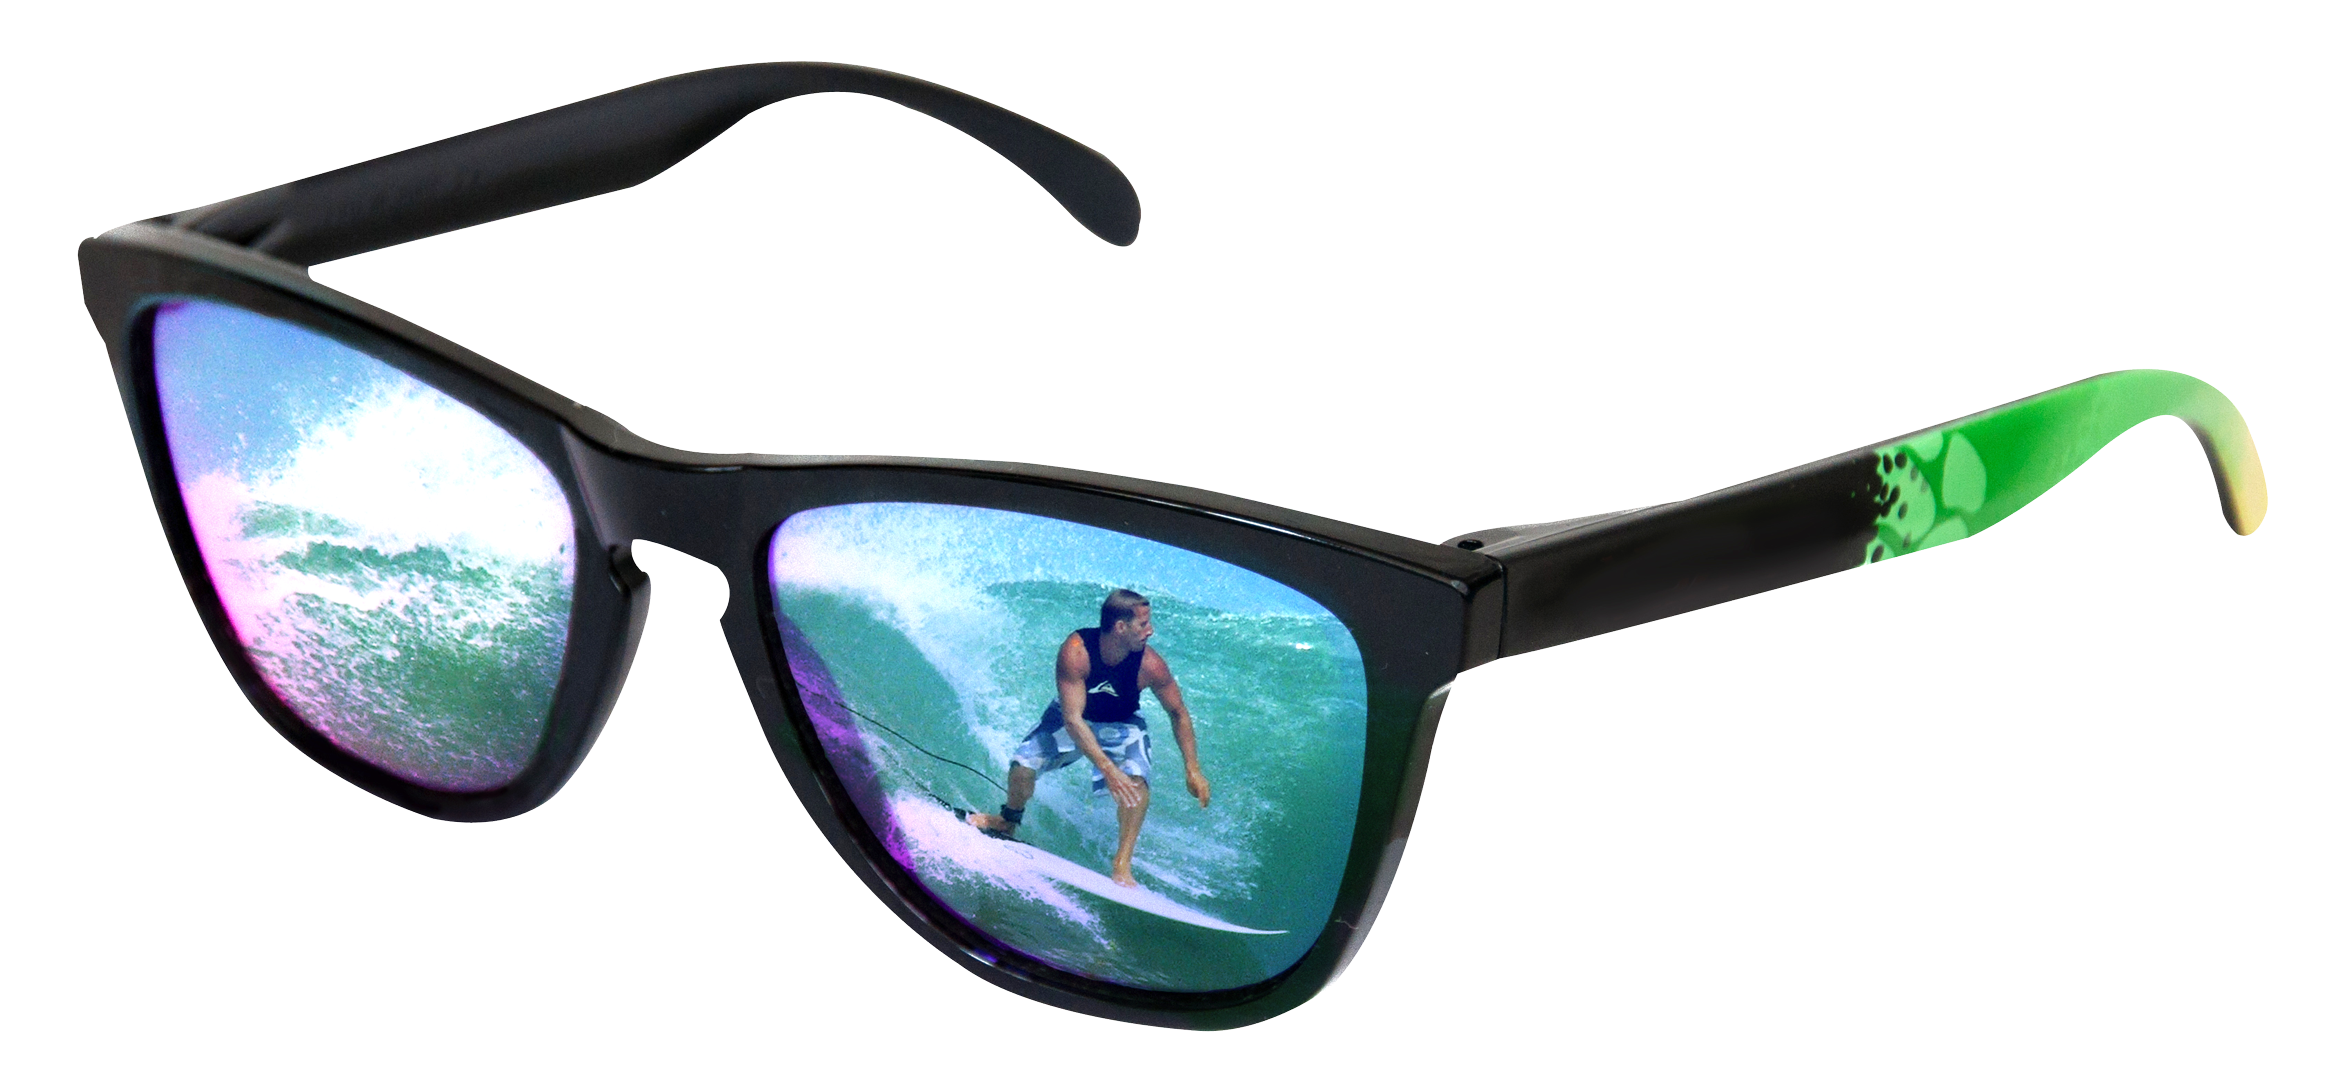 Sunglasses With Surfer Reflection Png Images 3850